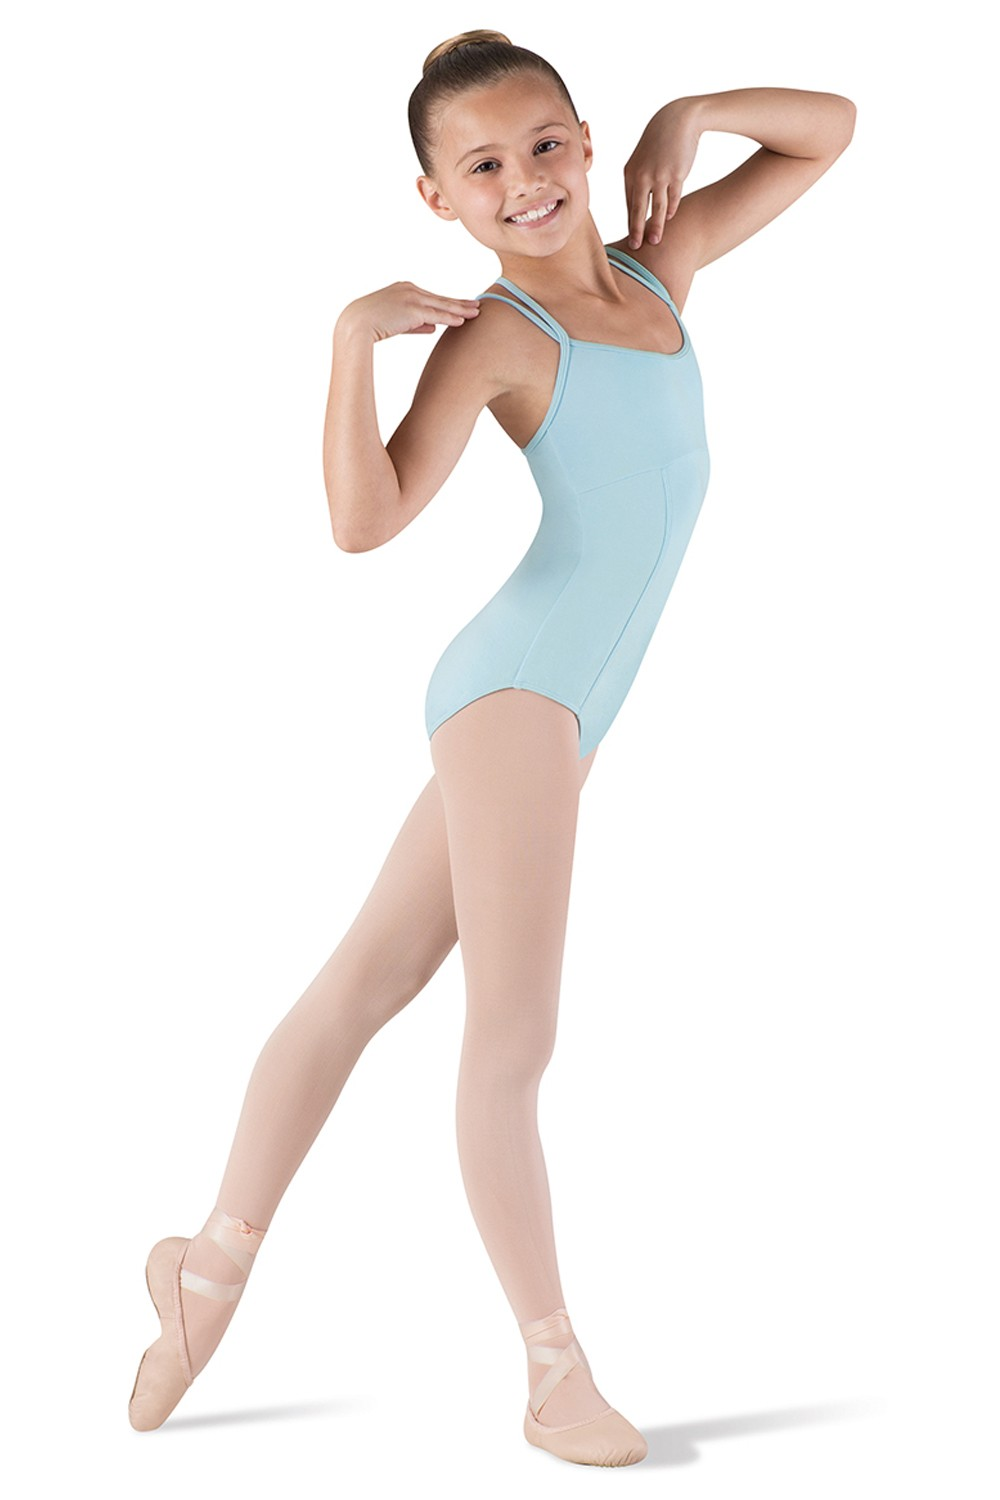 Couru Children's Dance Leotards